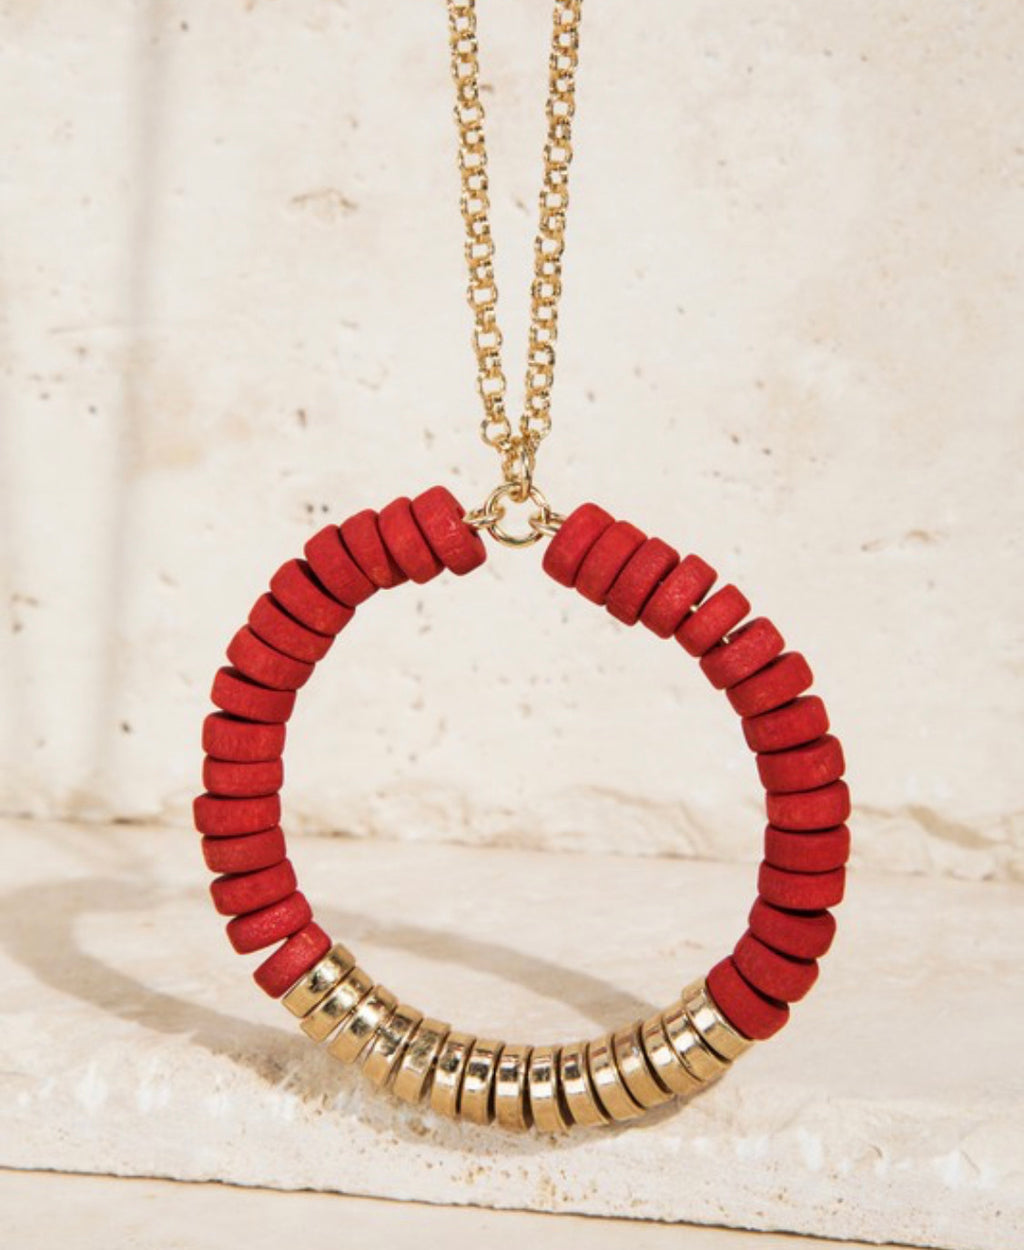 Wood and Satin Metal Bead Necklace - Scarlet